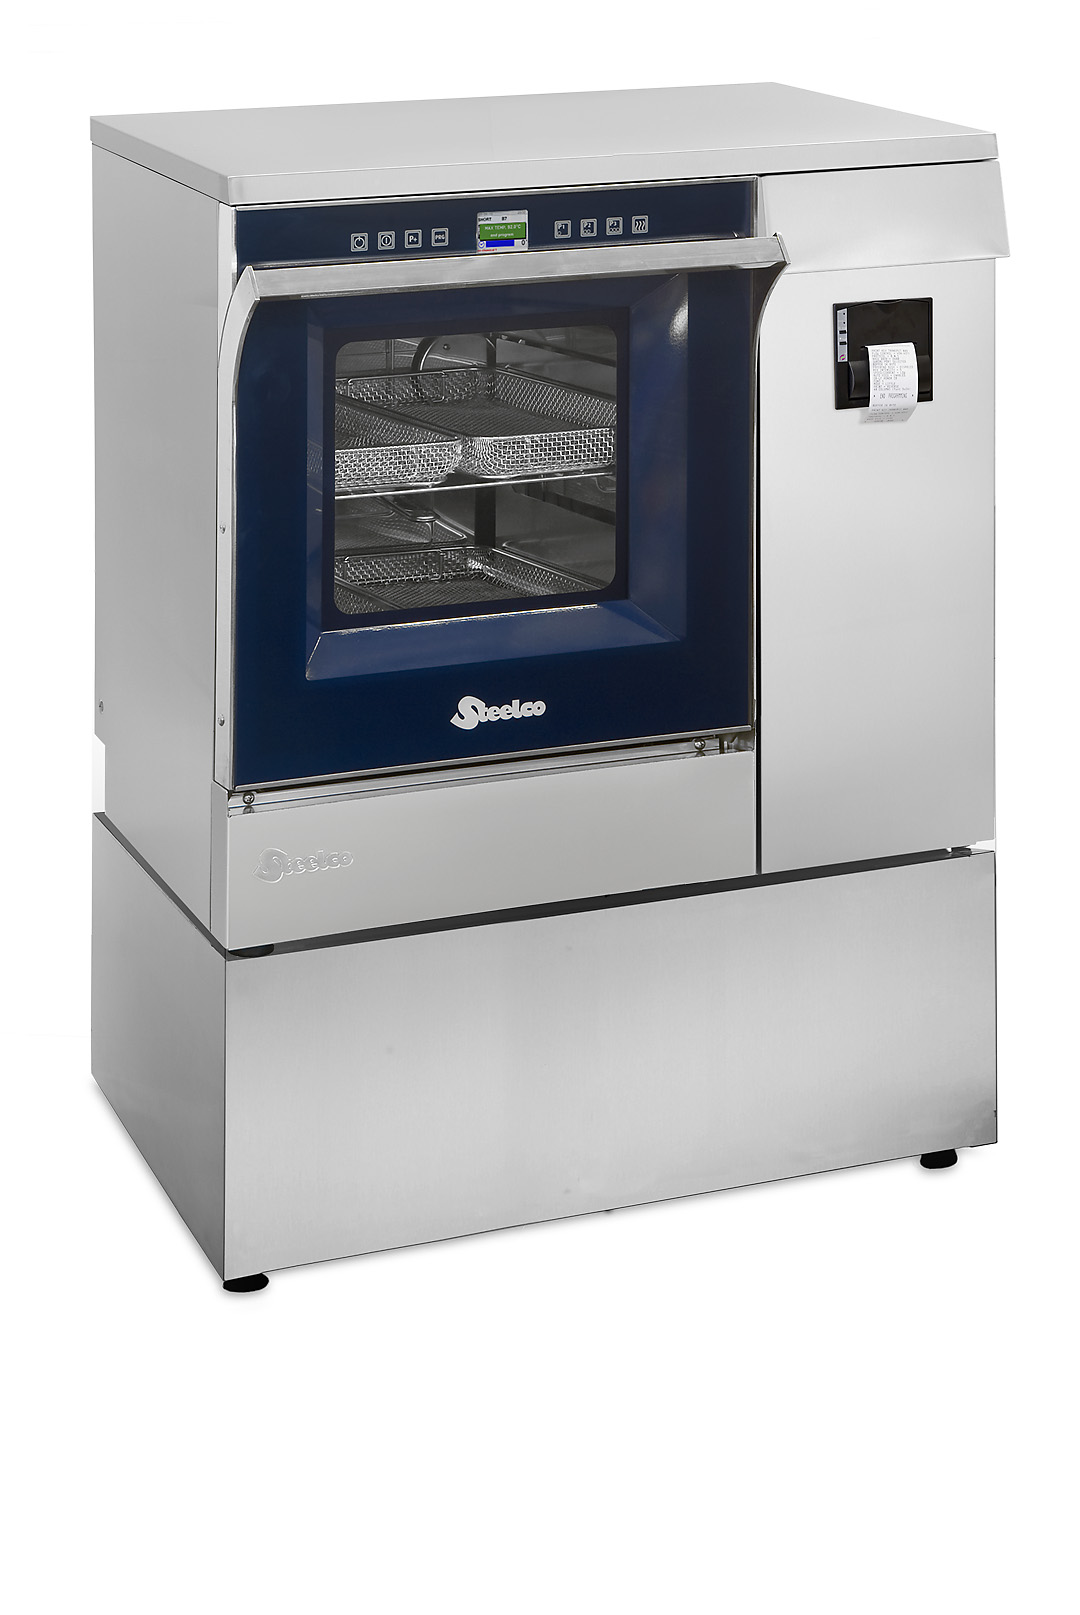 DS 500 CL full glass closed side cabinet stand 300.jpg